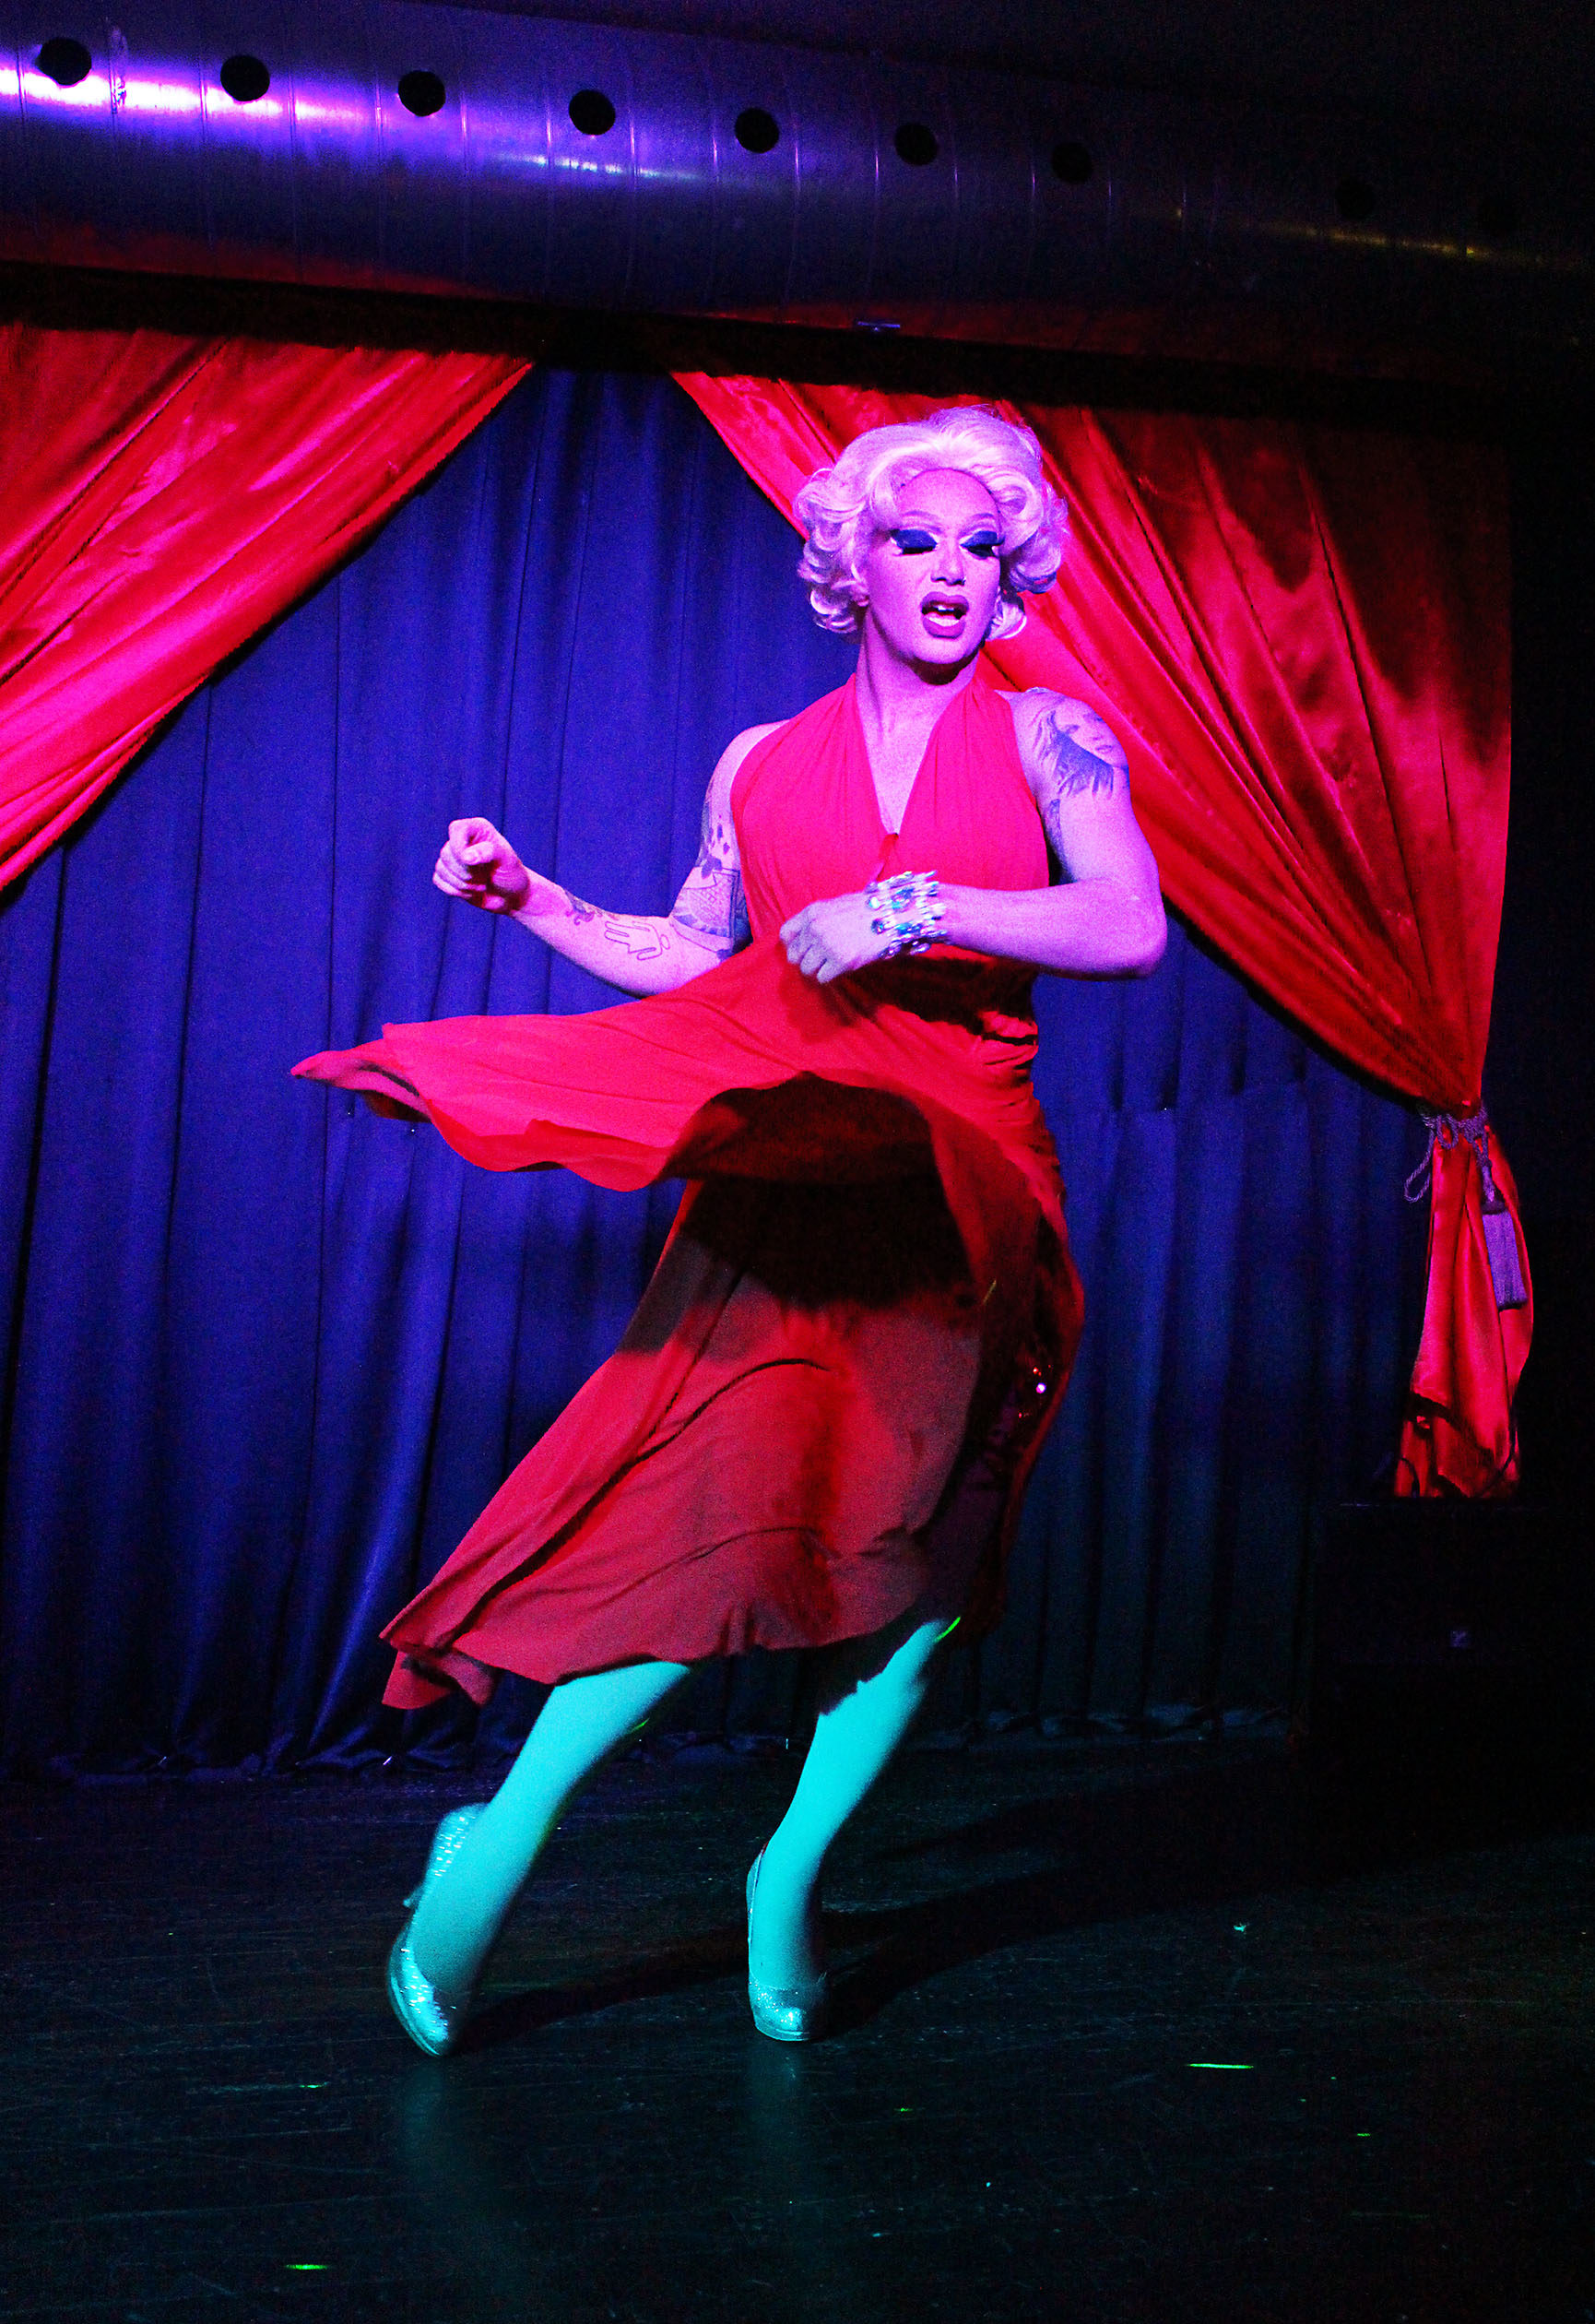 Scarlett Bobo performing on stage in a red outfit, with red curtains in the background.